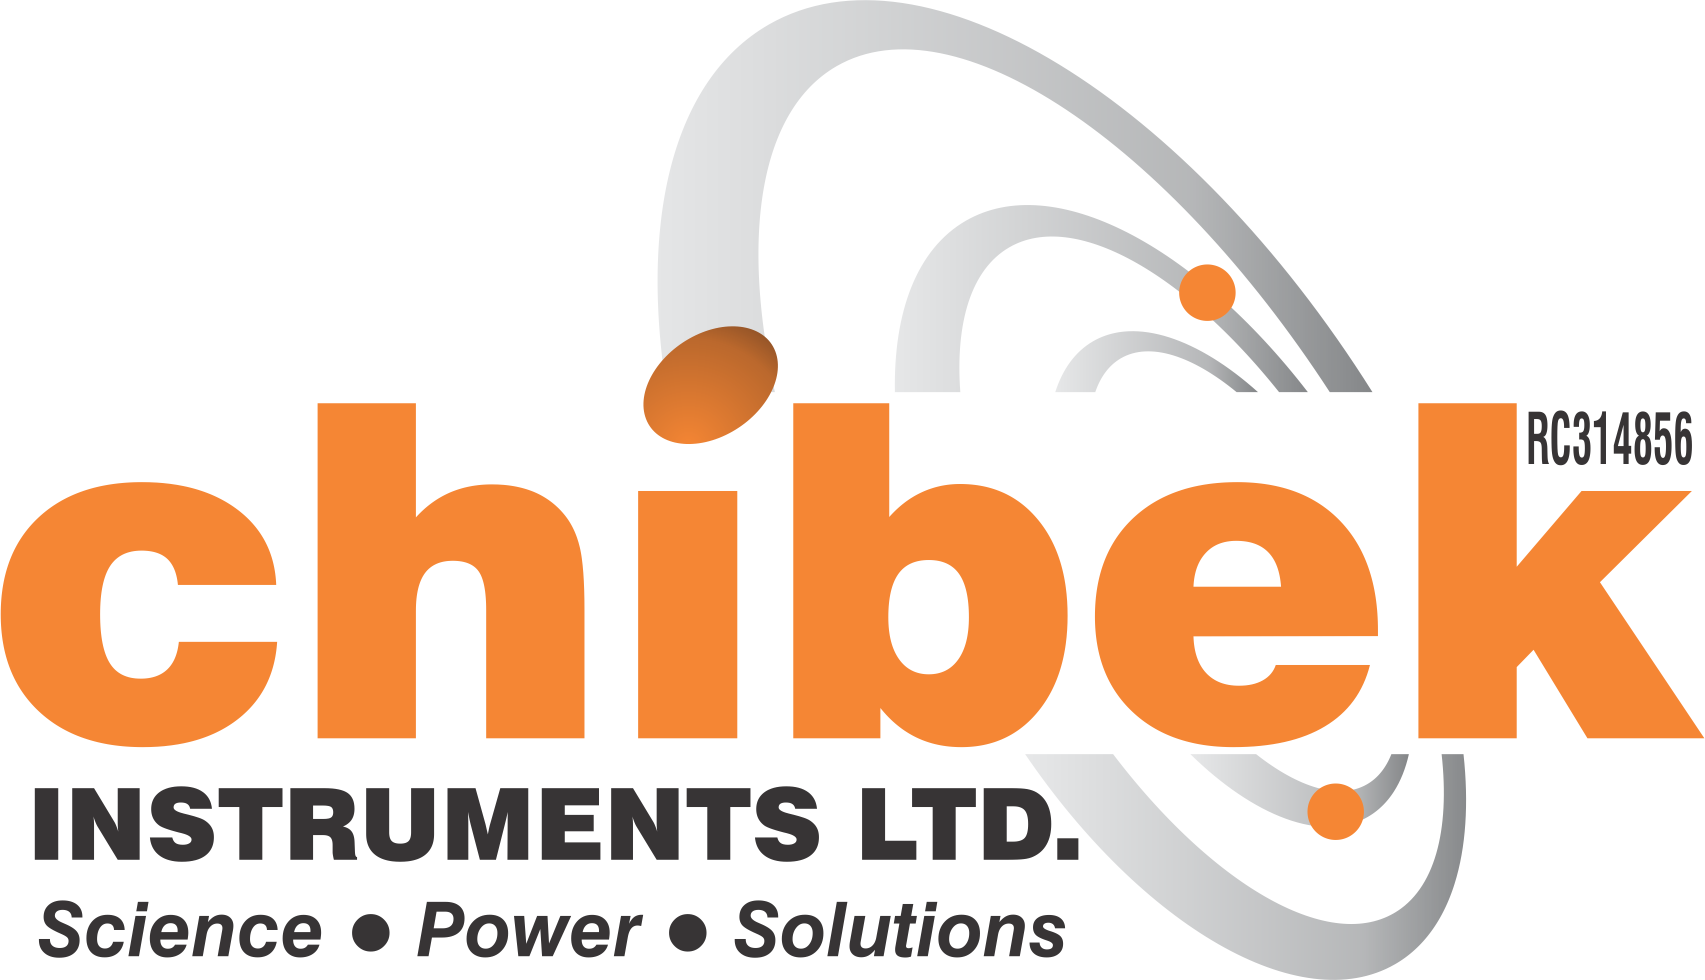 Chibek-logo